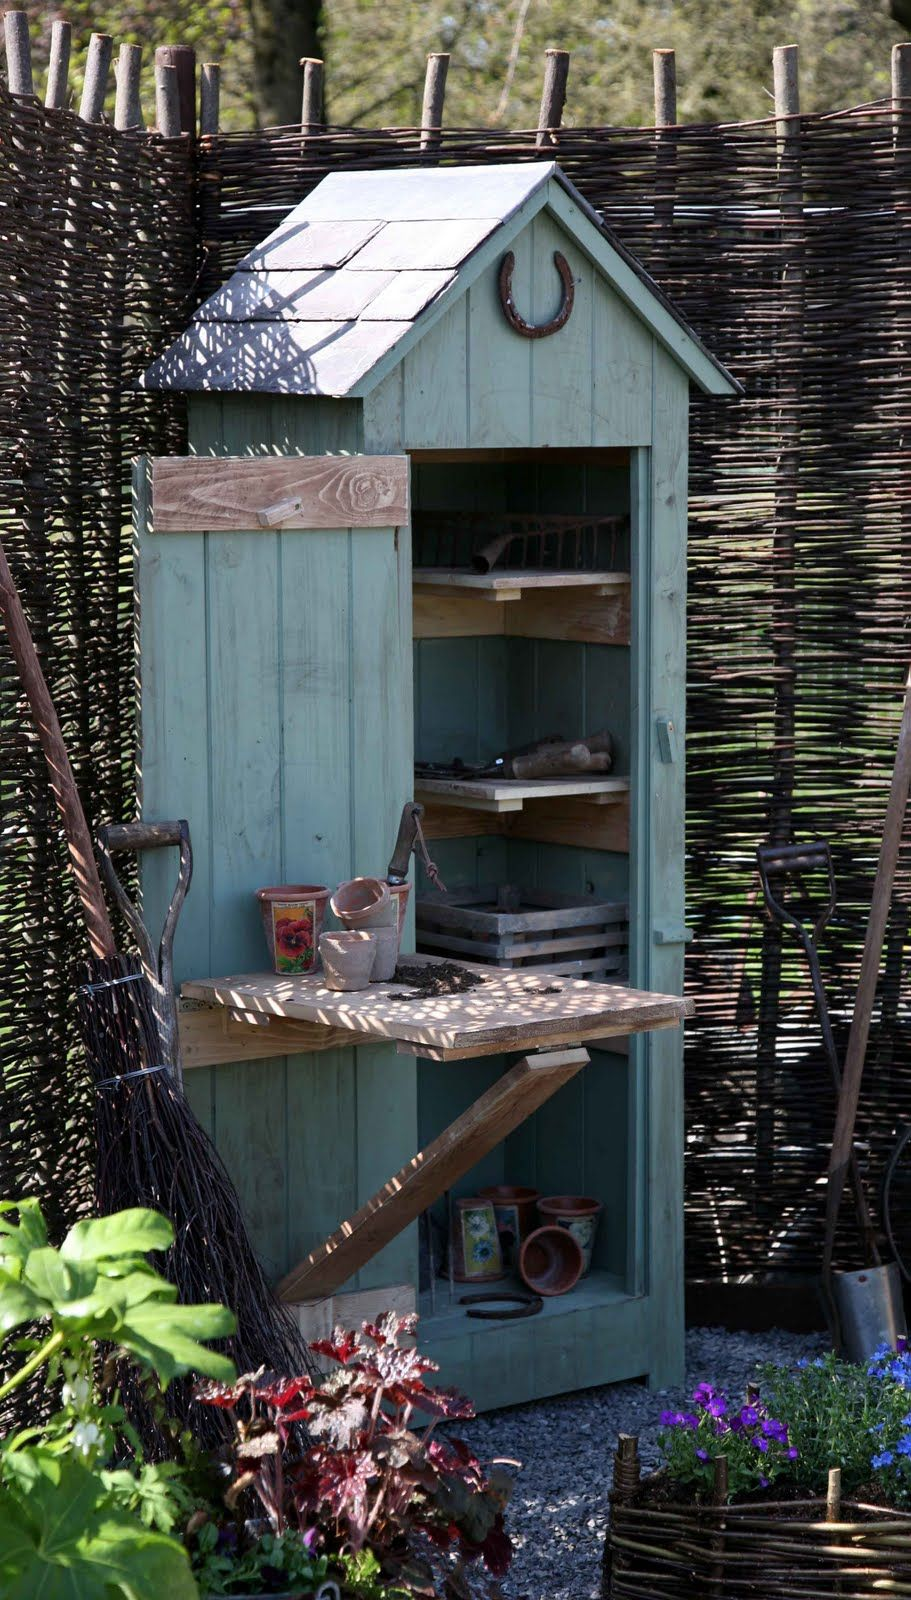 Cute Potting Shed Small But Serves The Purpose Small